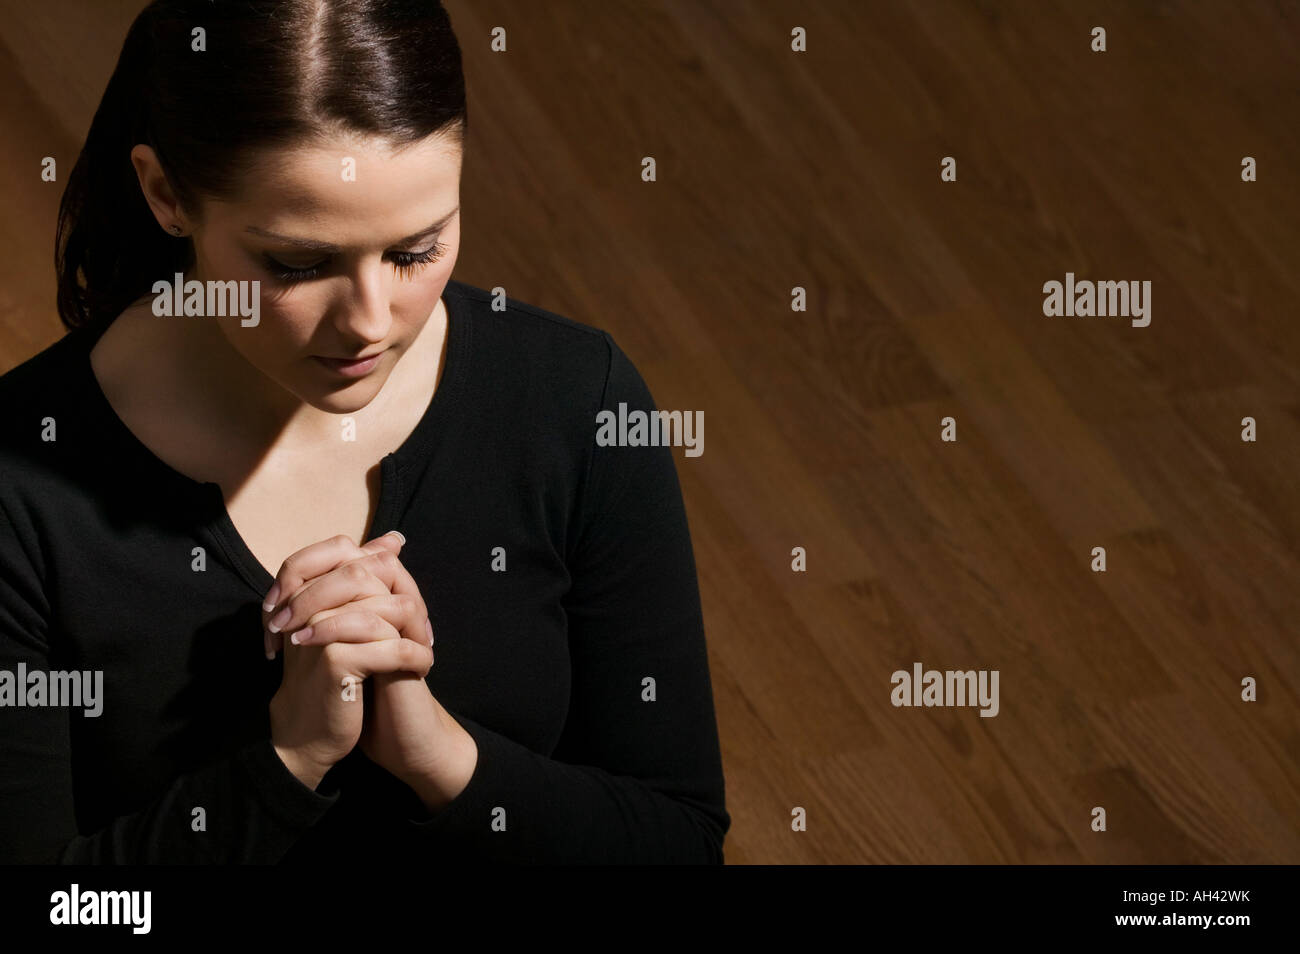 Woman with folded hands and head bowed - Stock Image